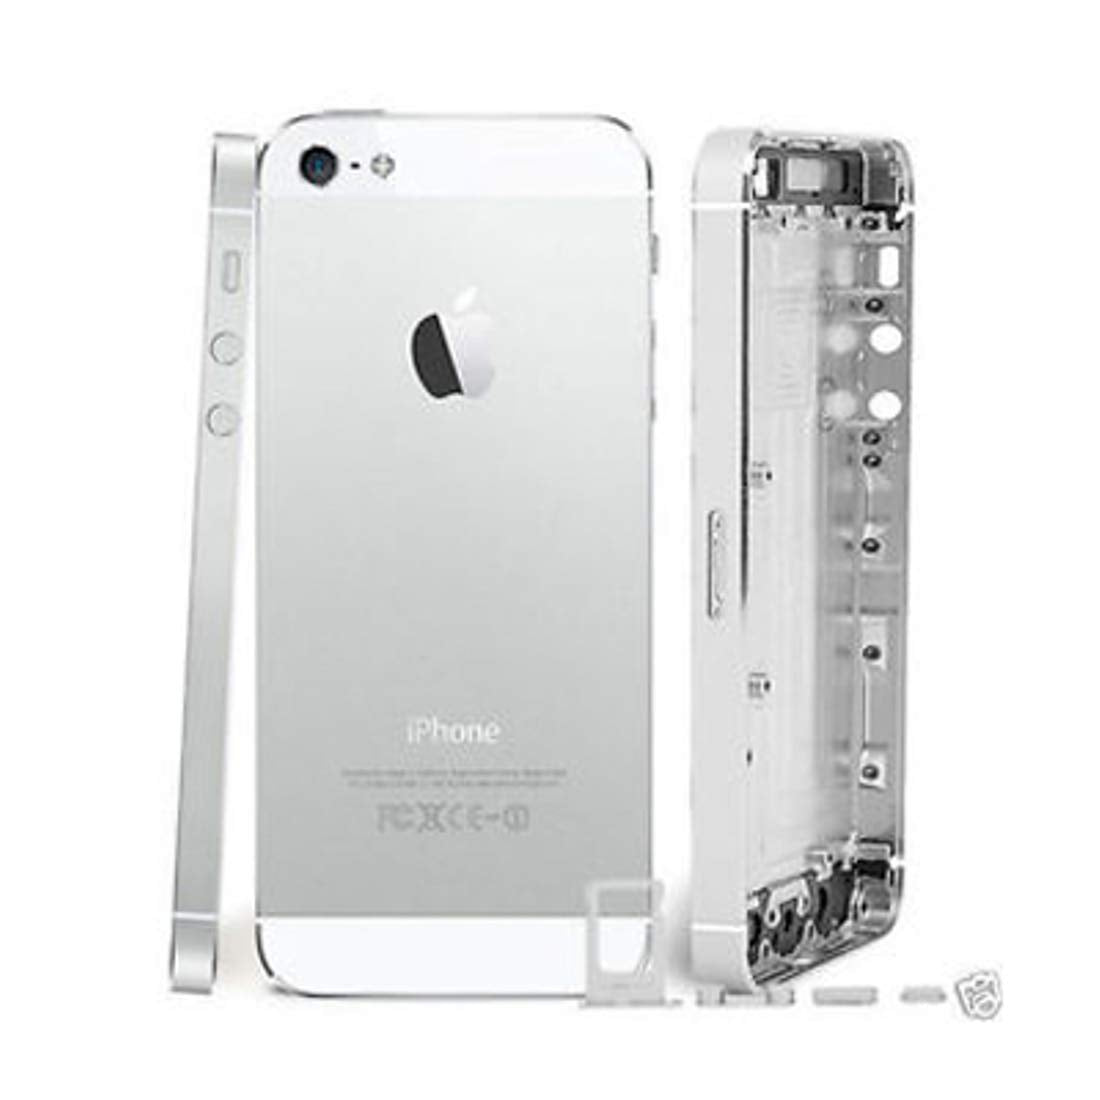 CellPhonez.in - Back  Housing Metal Body Back Panel for iPhone 5G